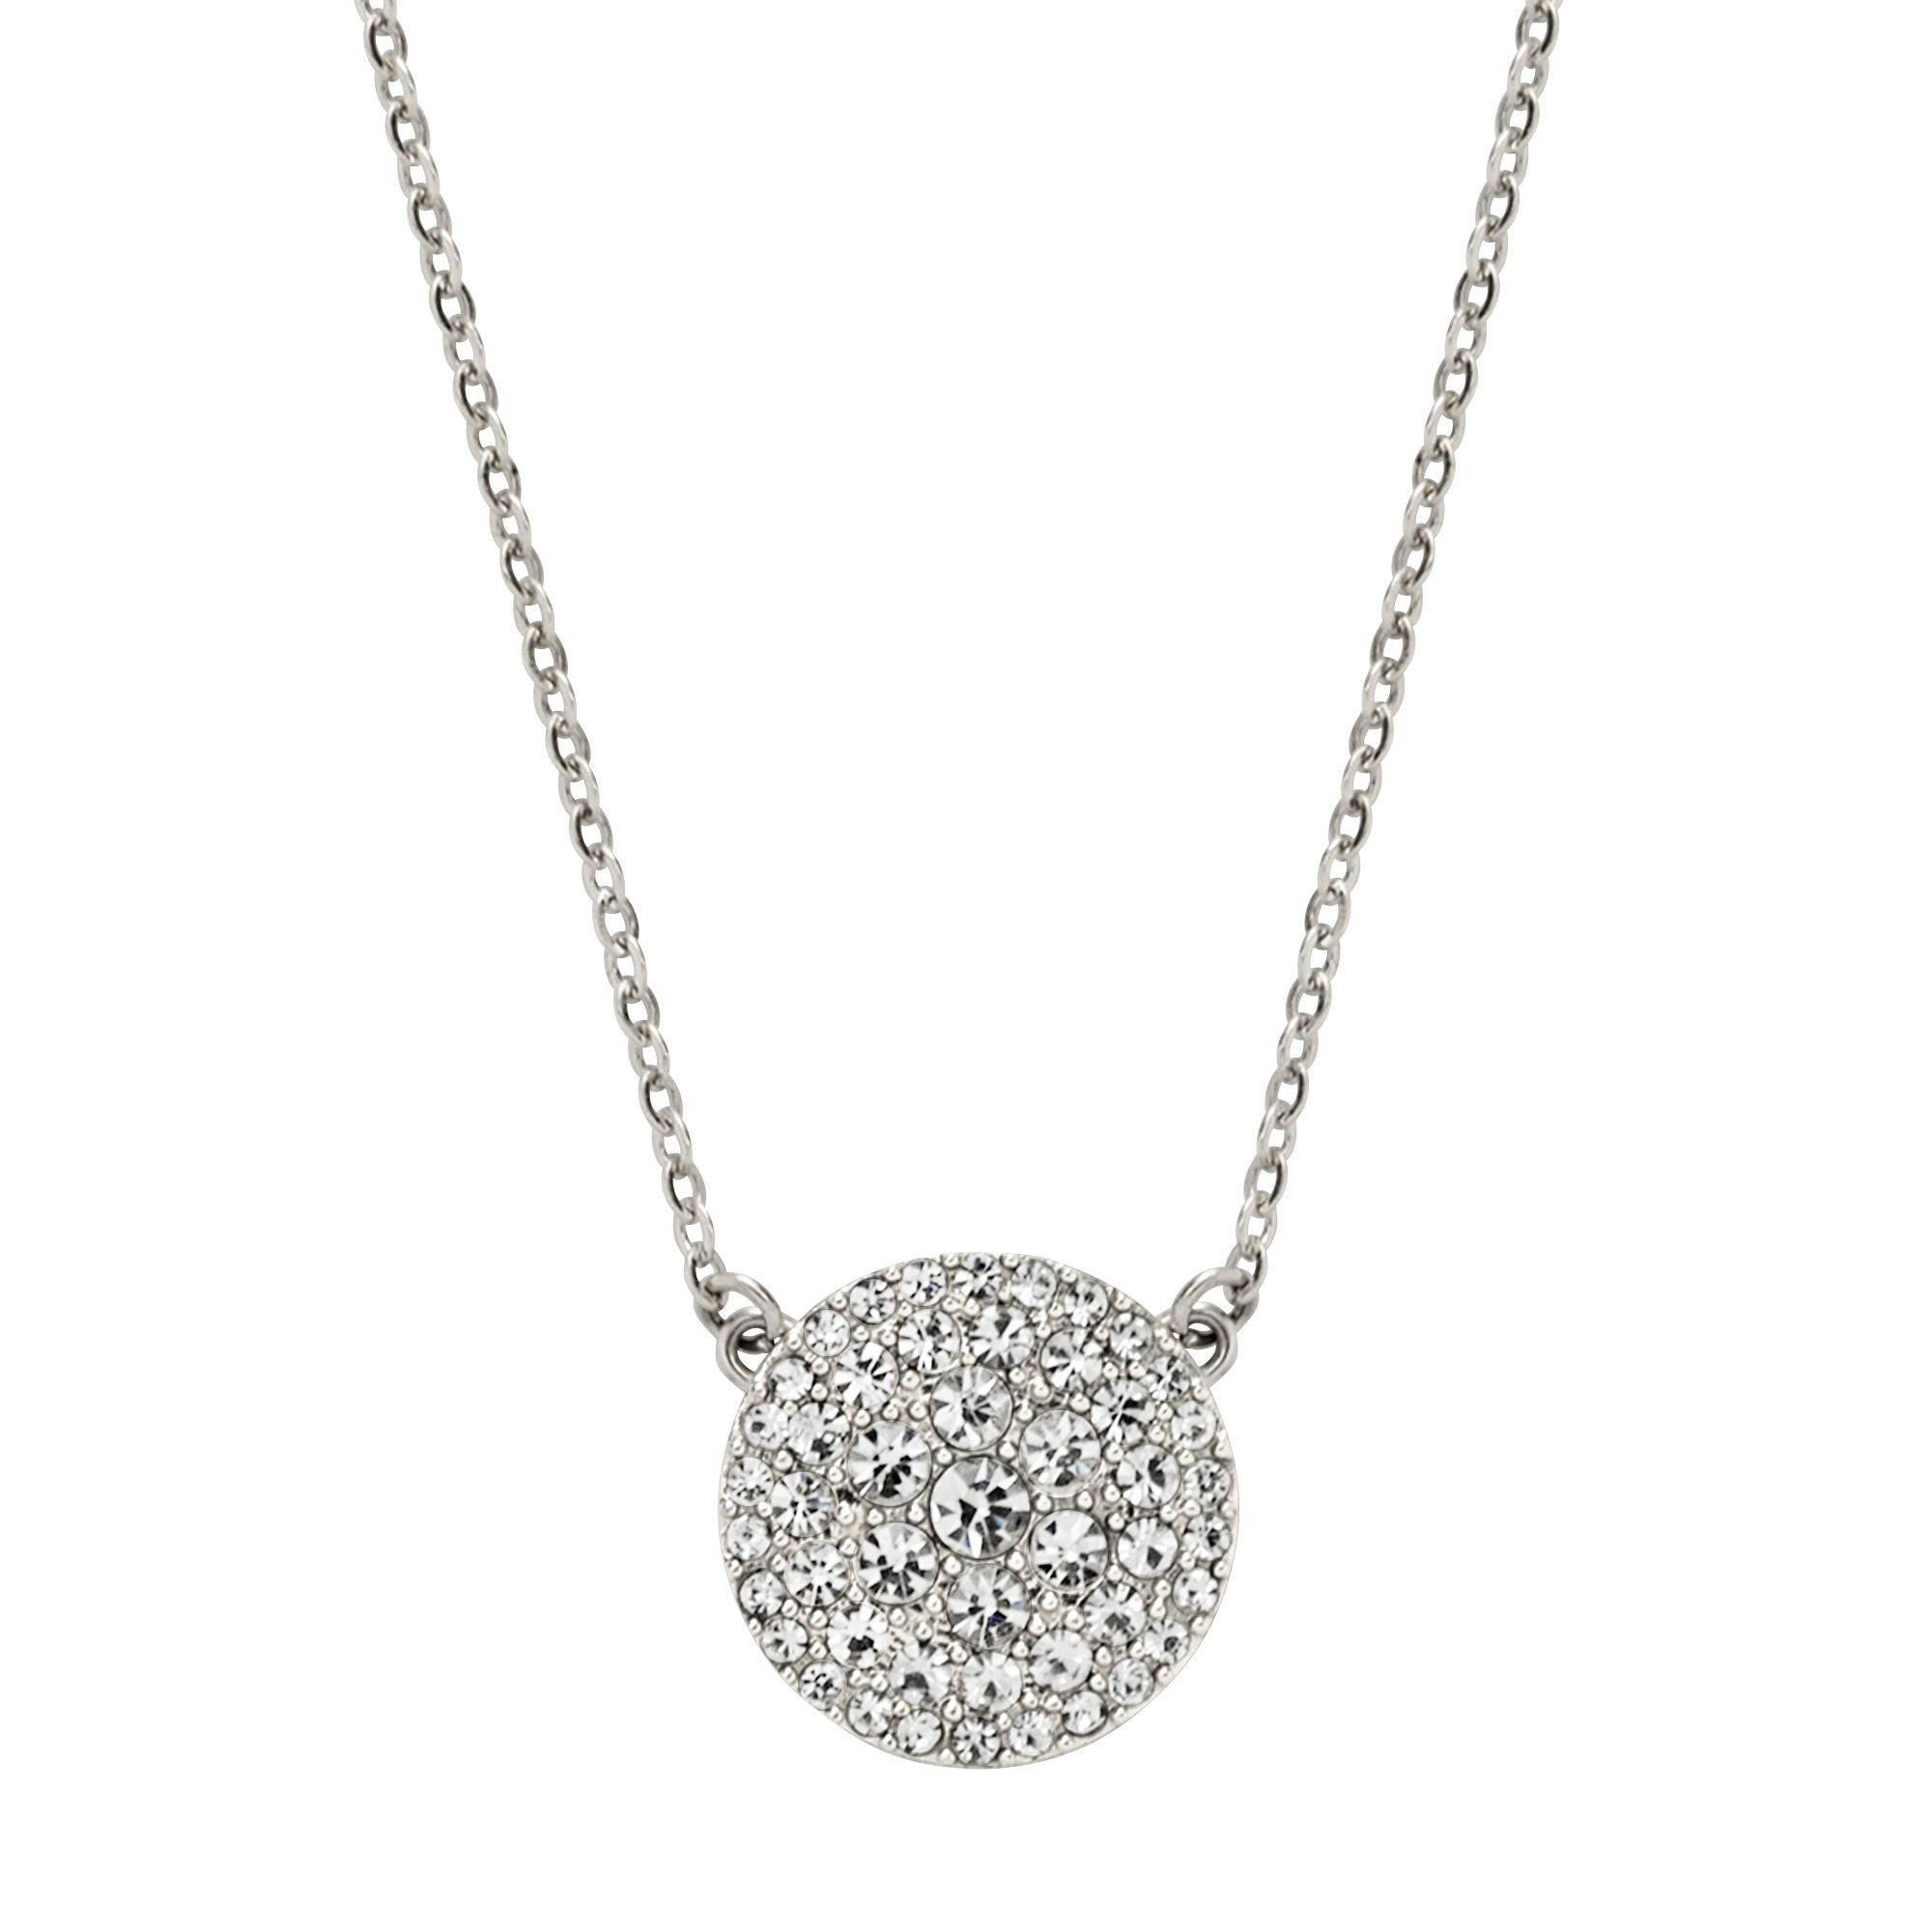 Jf00138040 Ladies silver iconic glitz necklace